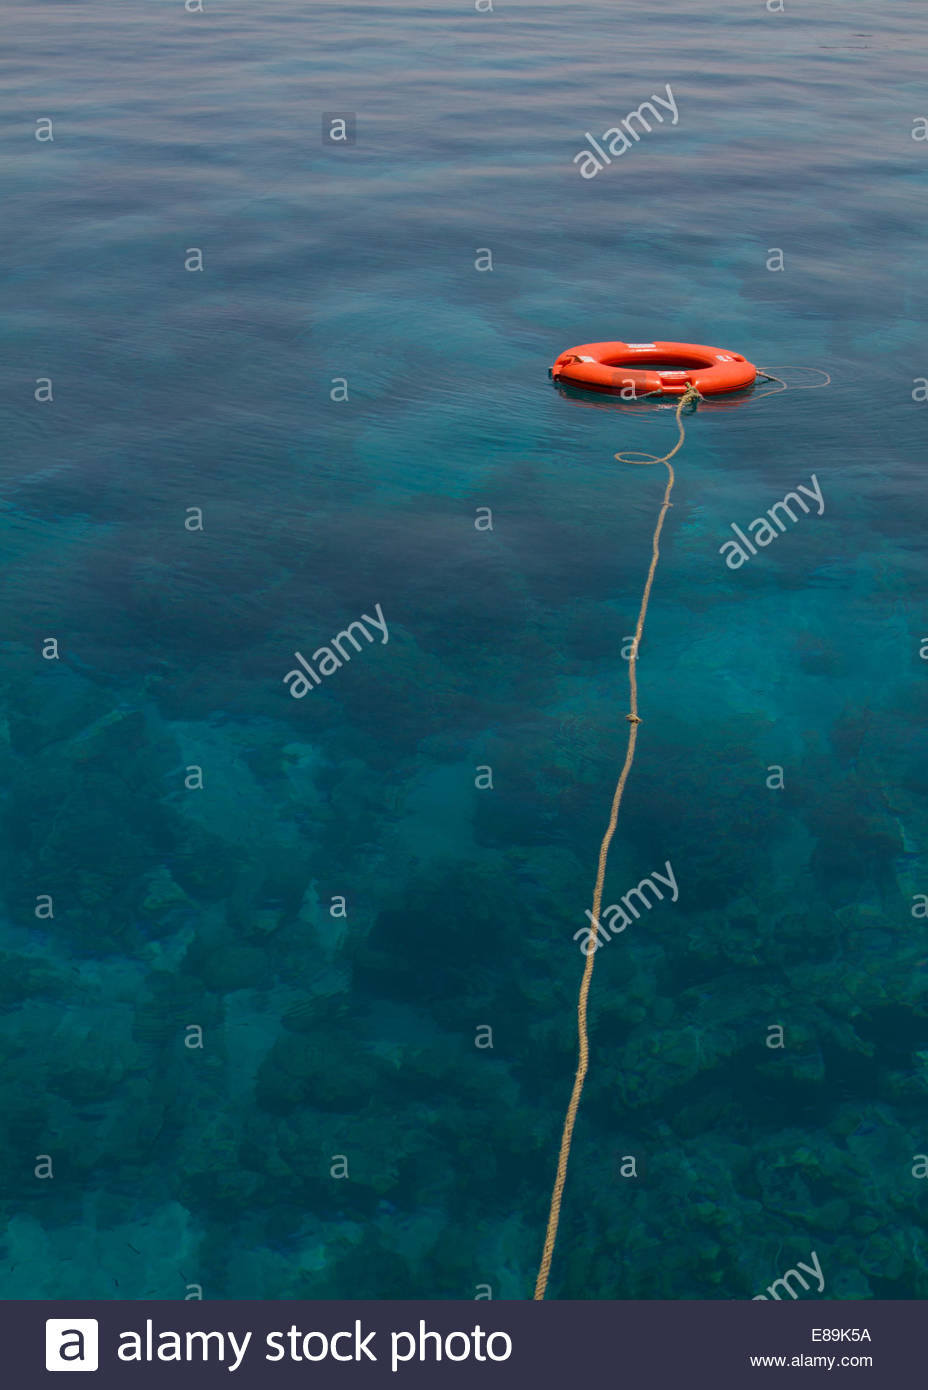 Life belt floating on water - Jordan Stock Photo